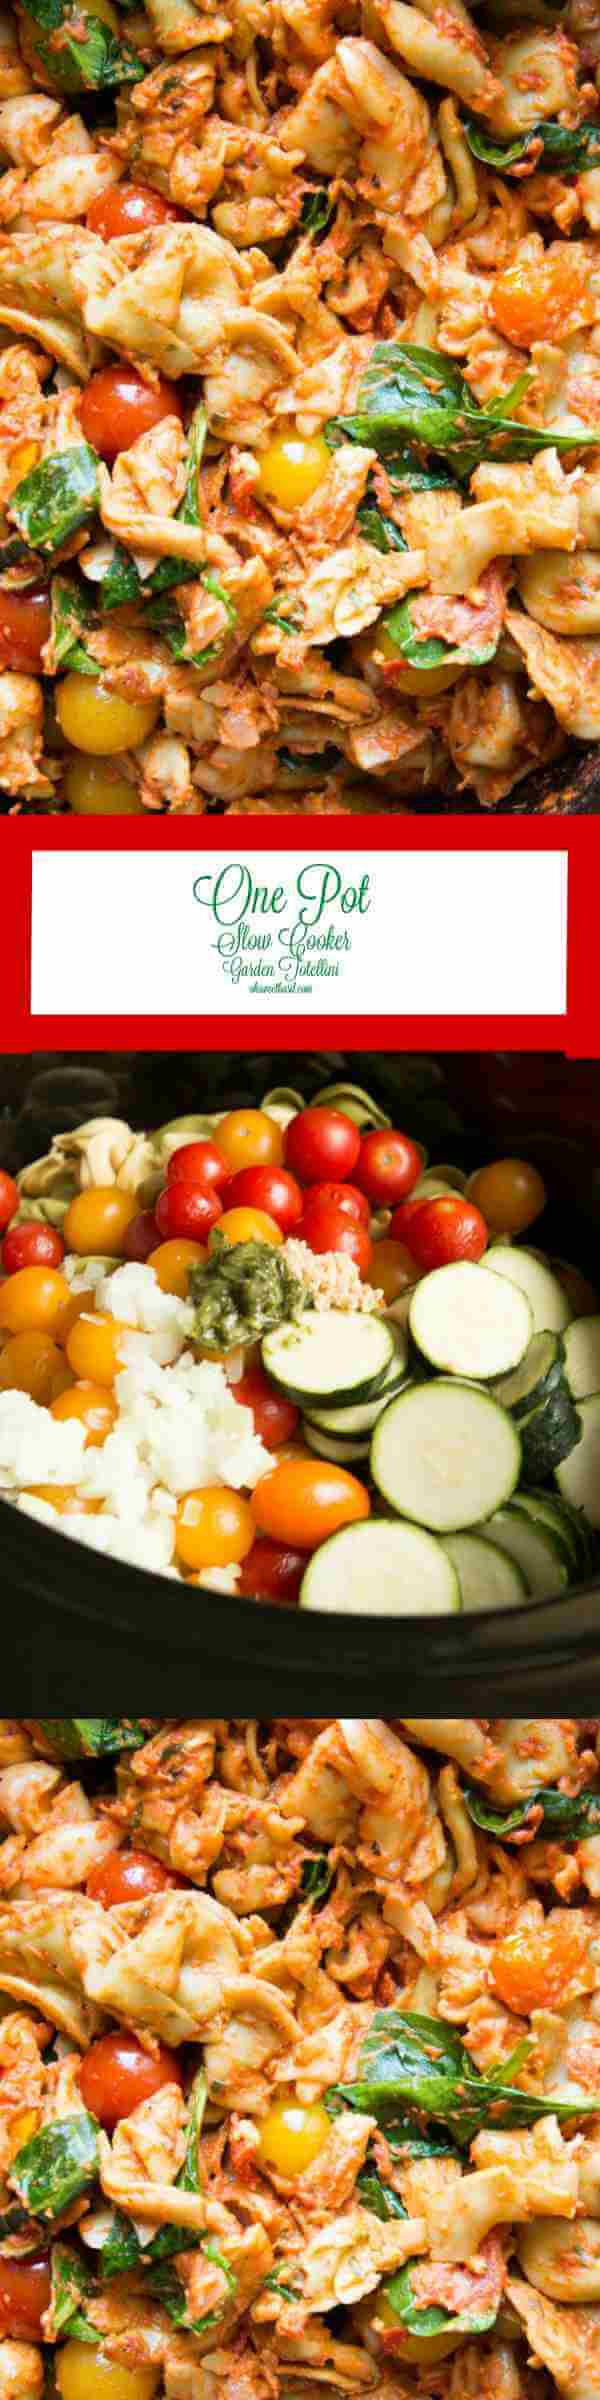 One pot slow cooker garden tortellini is the easiest thing ever but tastes wonderful! ohsweetbasil.com